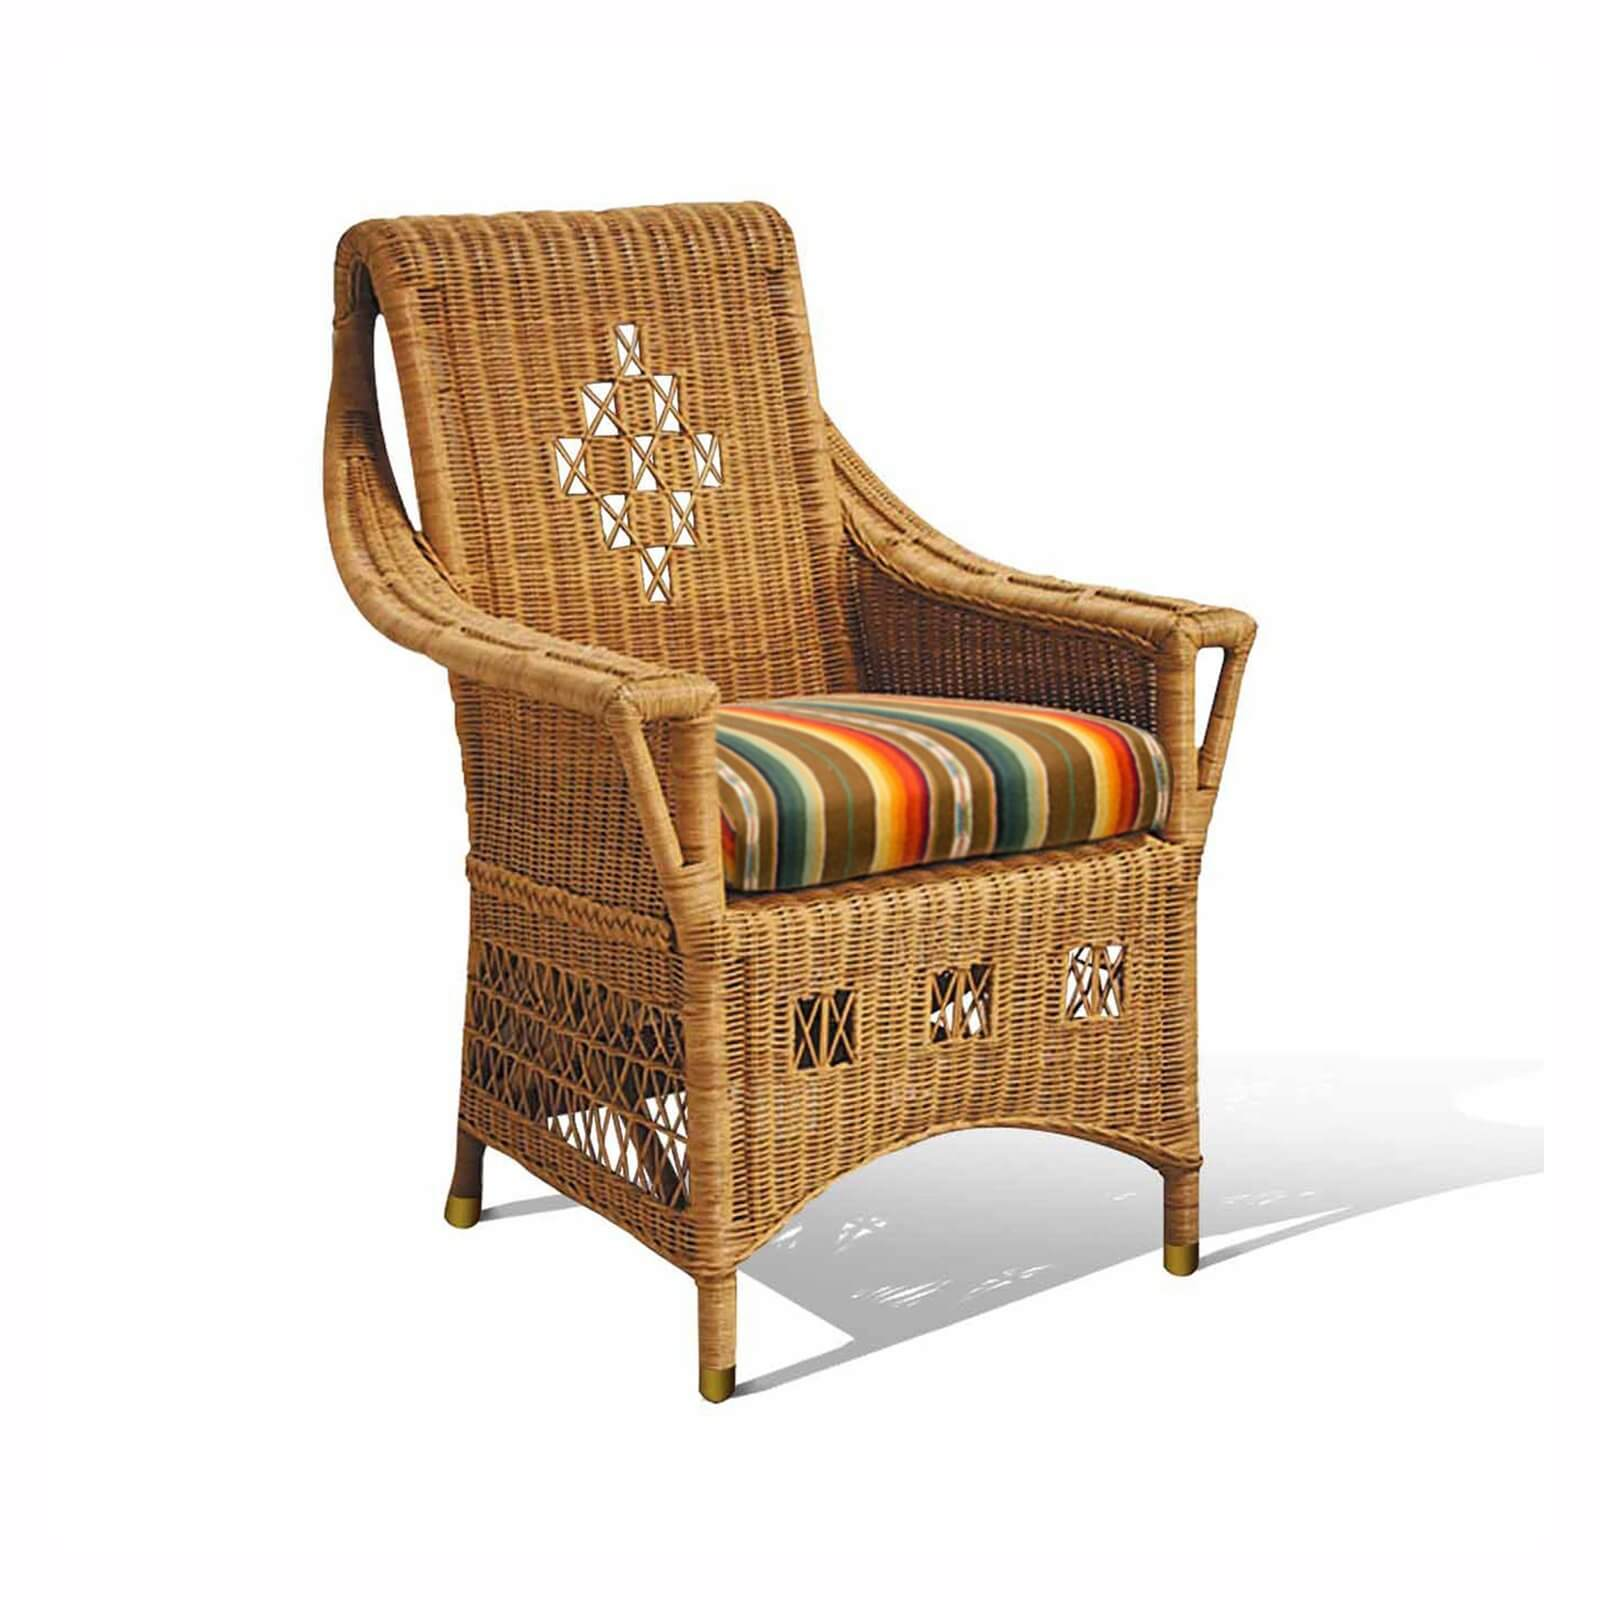 HUDSON BAY ARM CHAIR - STUART MEMBERY HOME COLLECTION